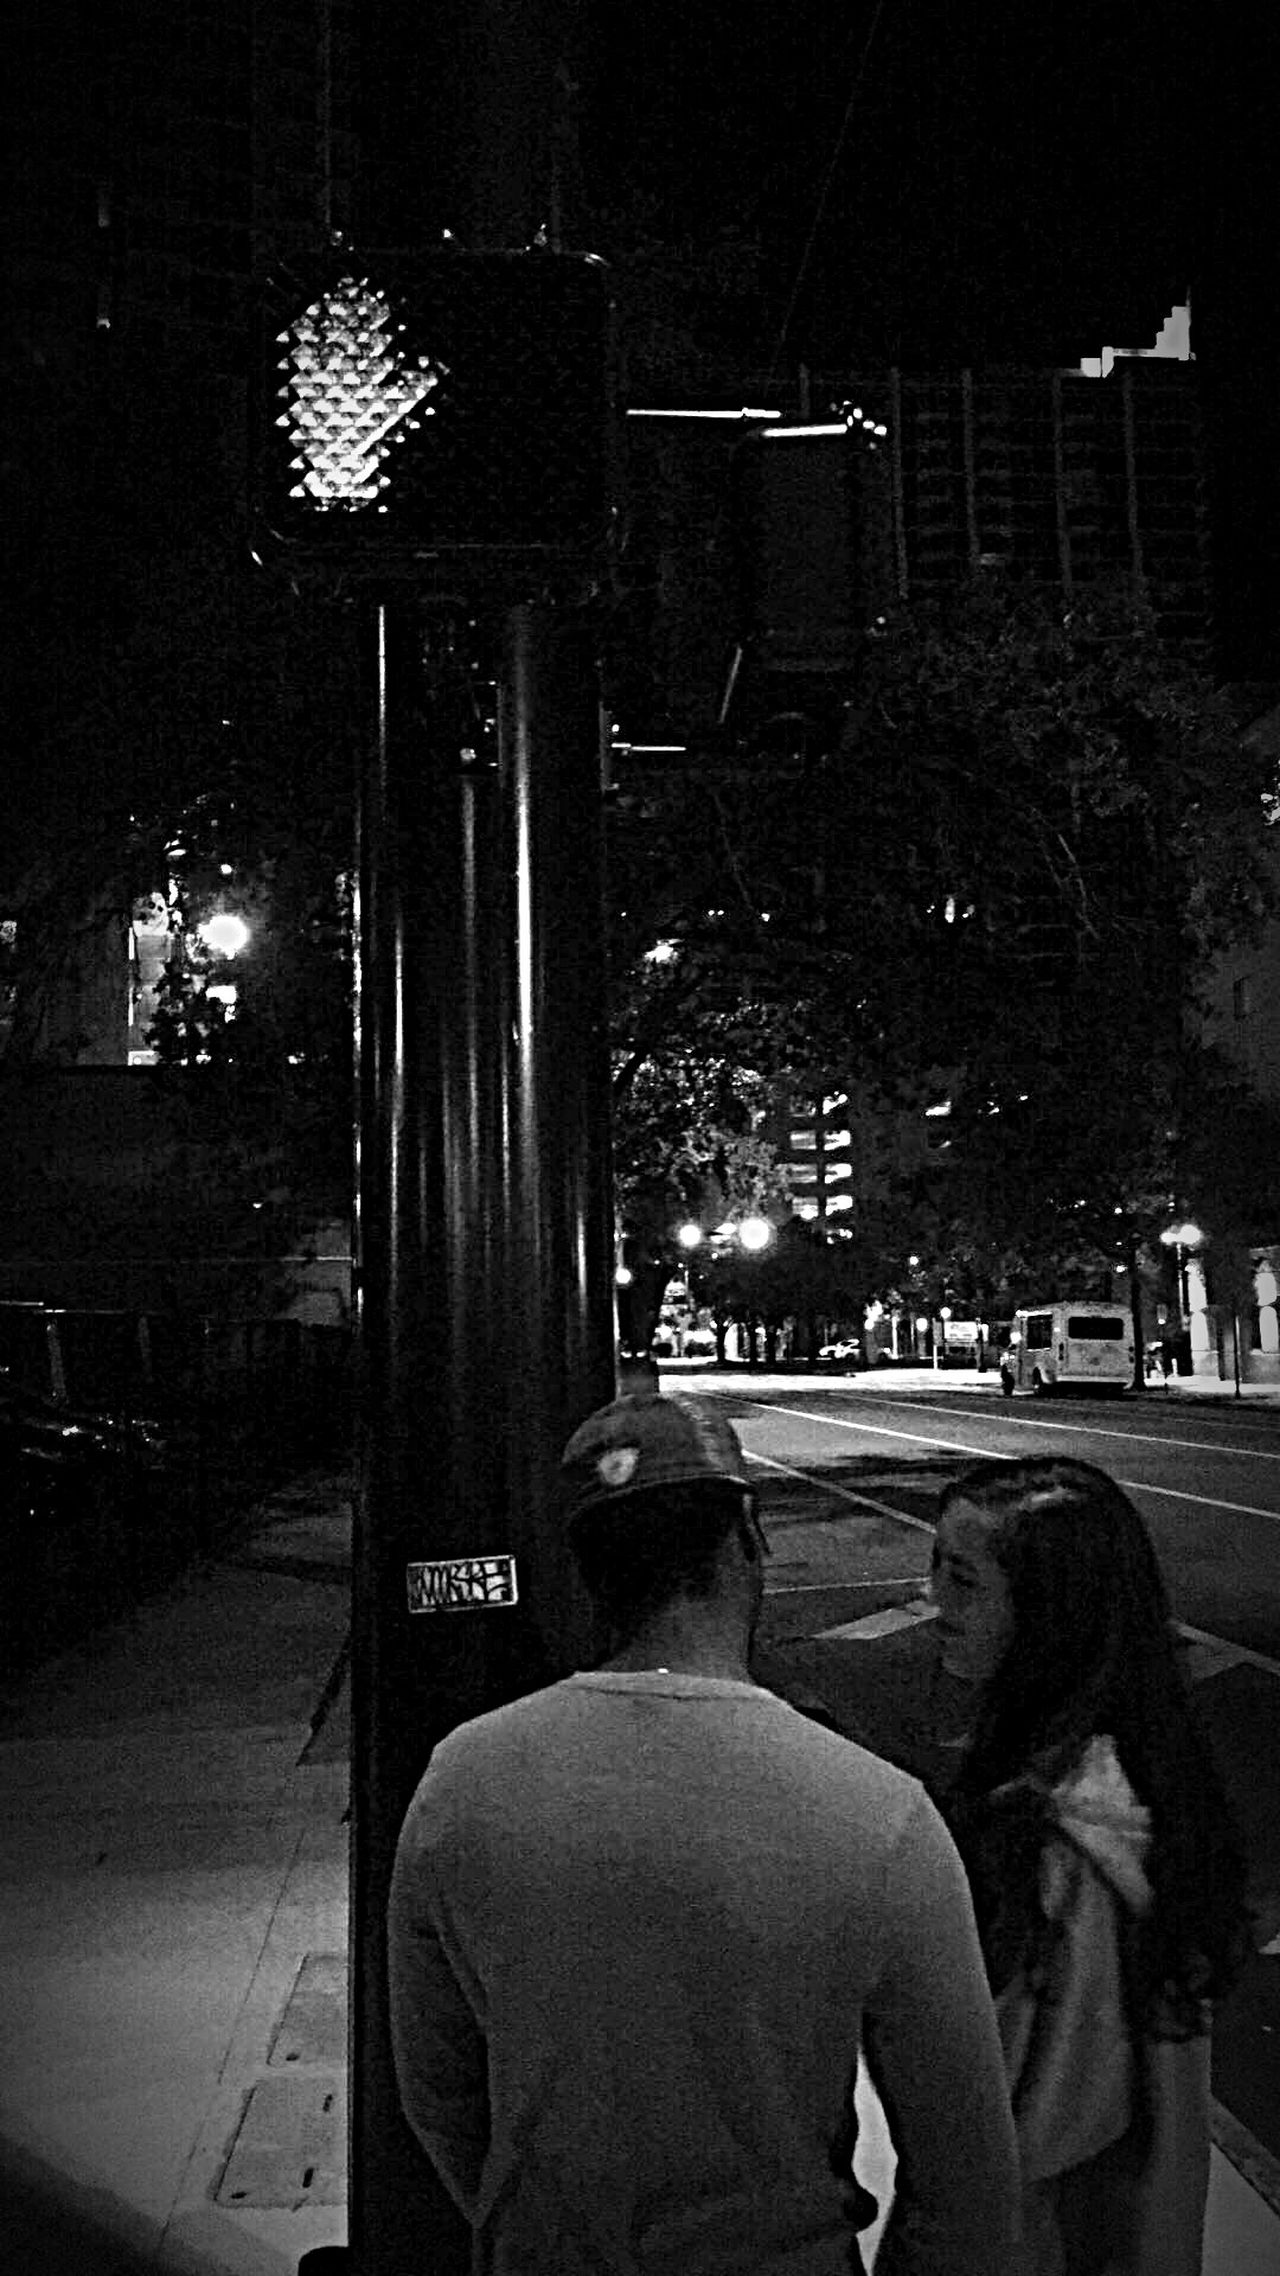 Monochrome Photography Monochrome Downtown Downtown Tampa Love Night Night Life Explore City Street Illuminated City Street City Life